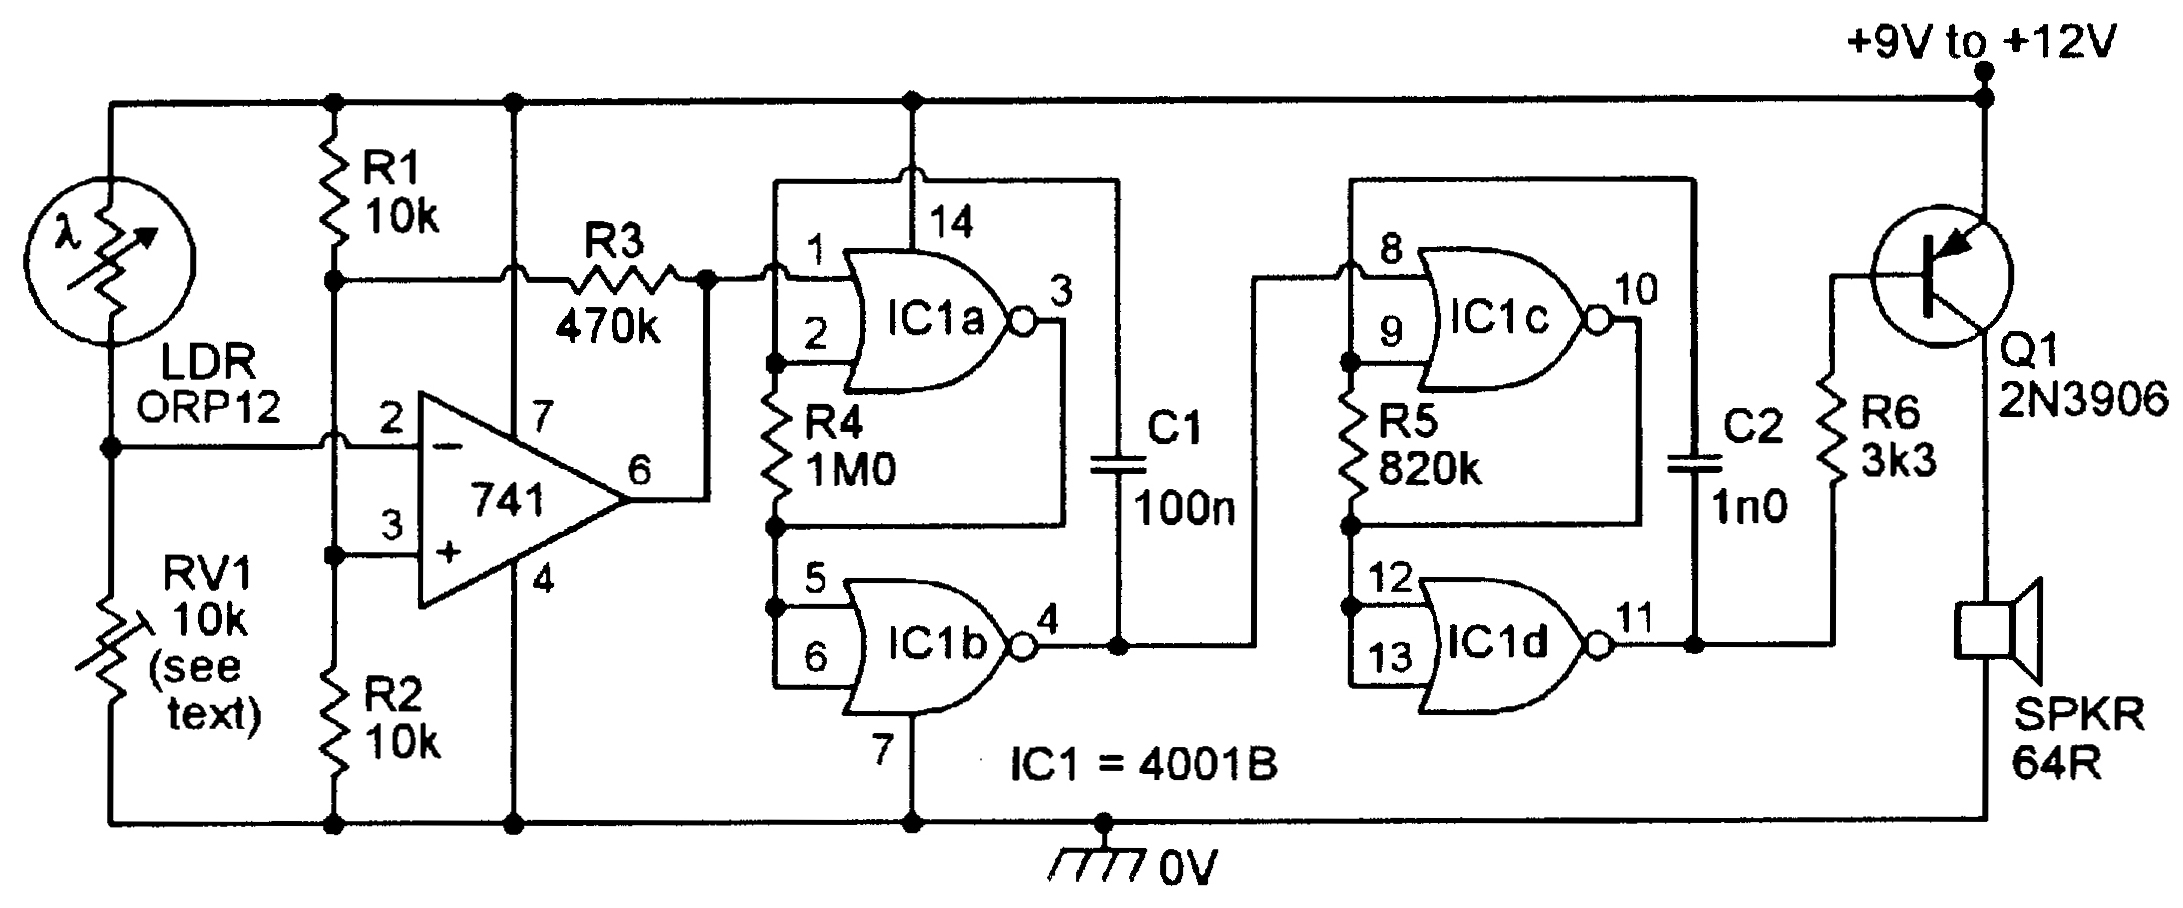 bistable circuit can remember its state until it is reset